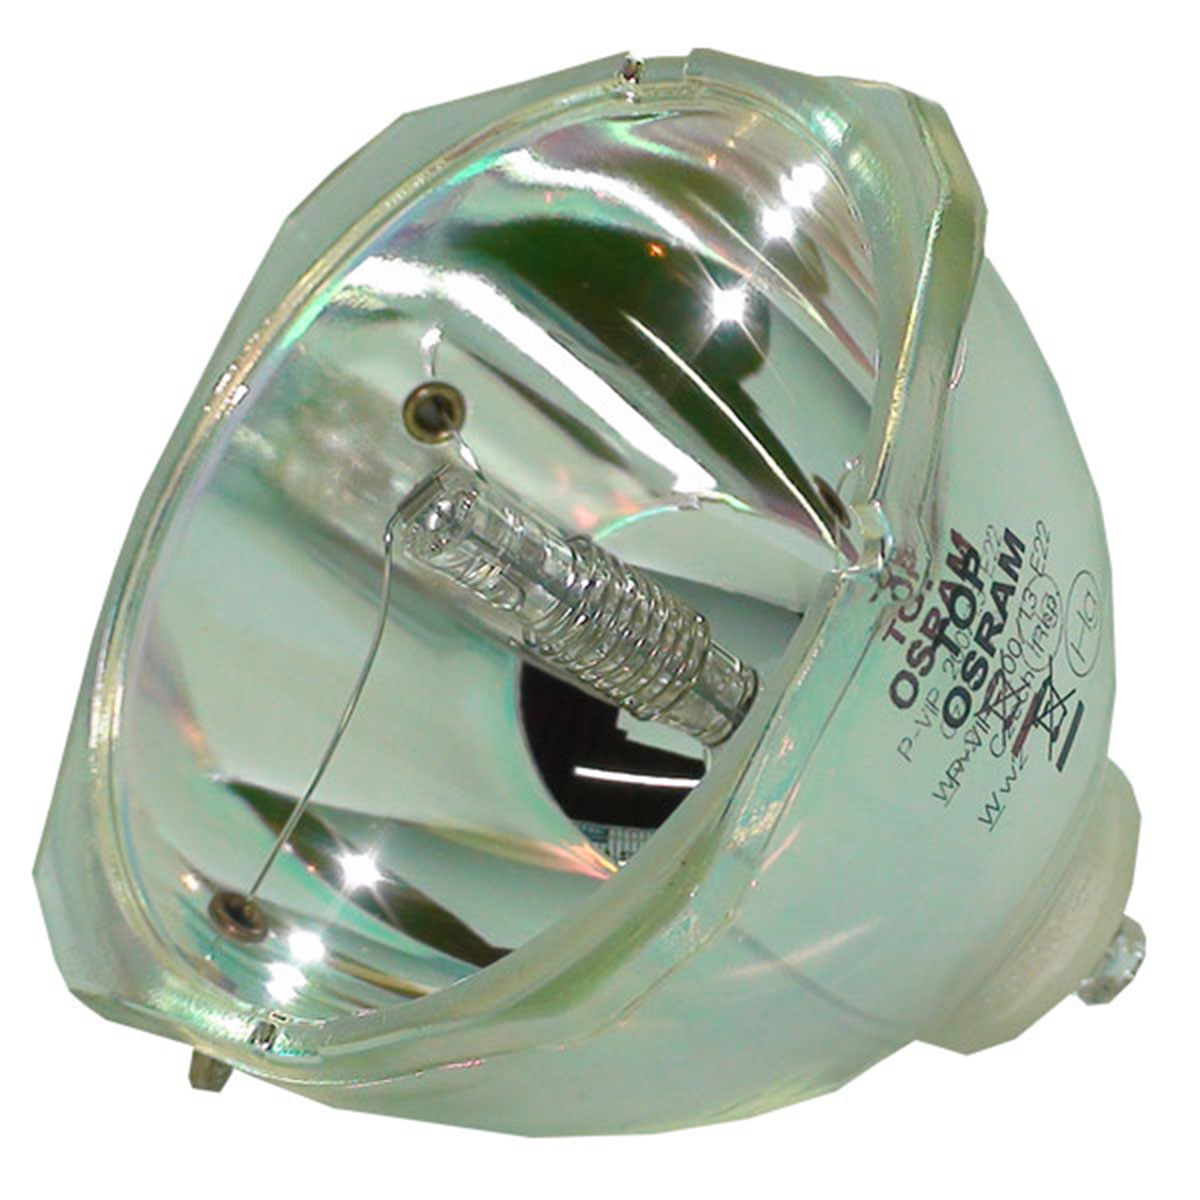 Lutema Platinum Bulb for HP mp4800 Projector (Lamp Only) - image 5 of 5